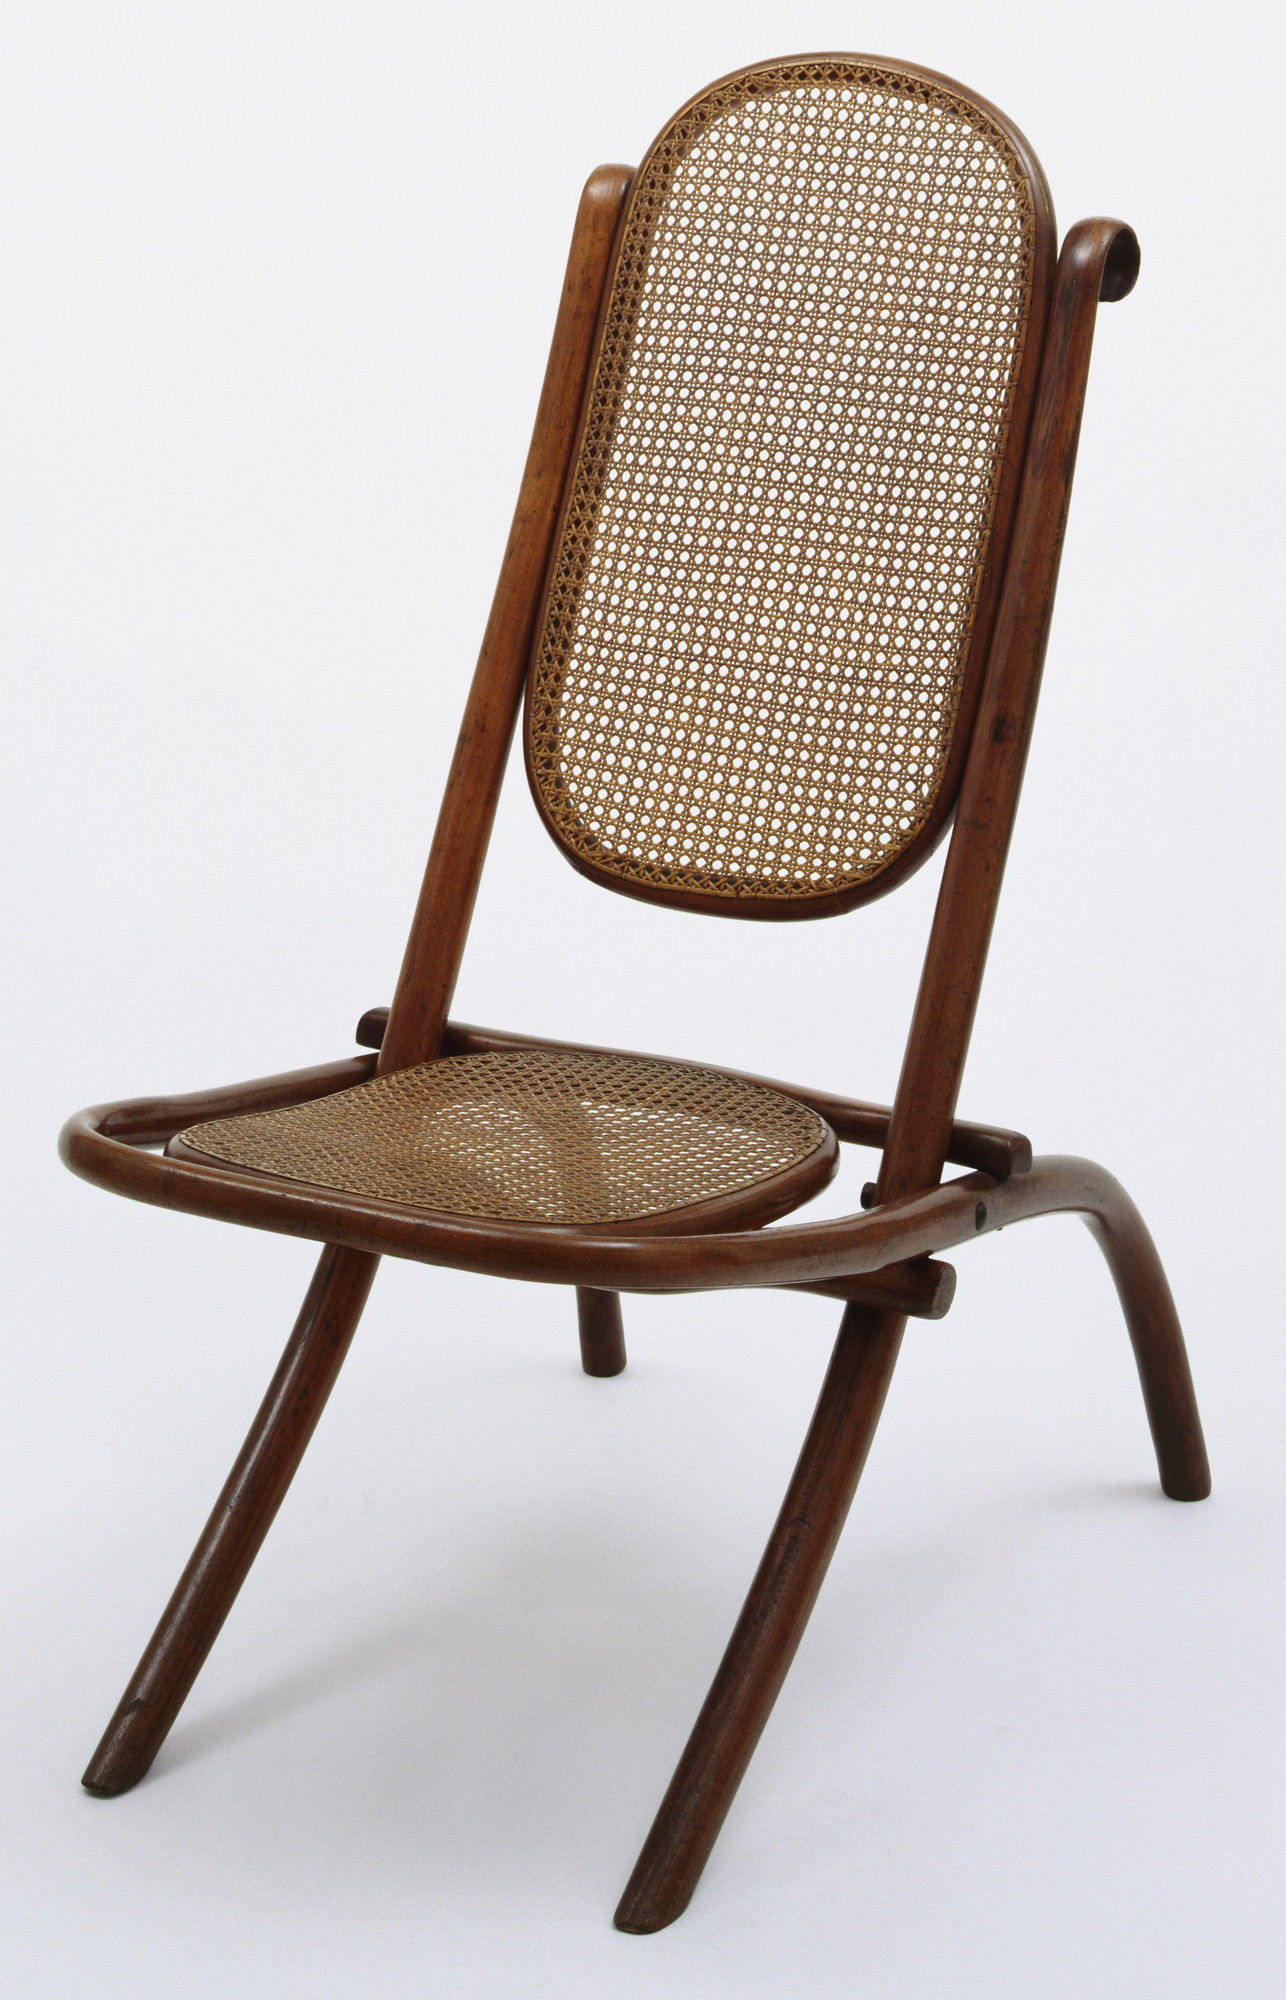 Michael Thonet. Folding Deck Chair. 1866